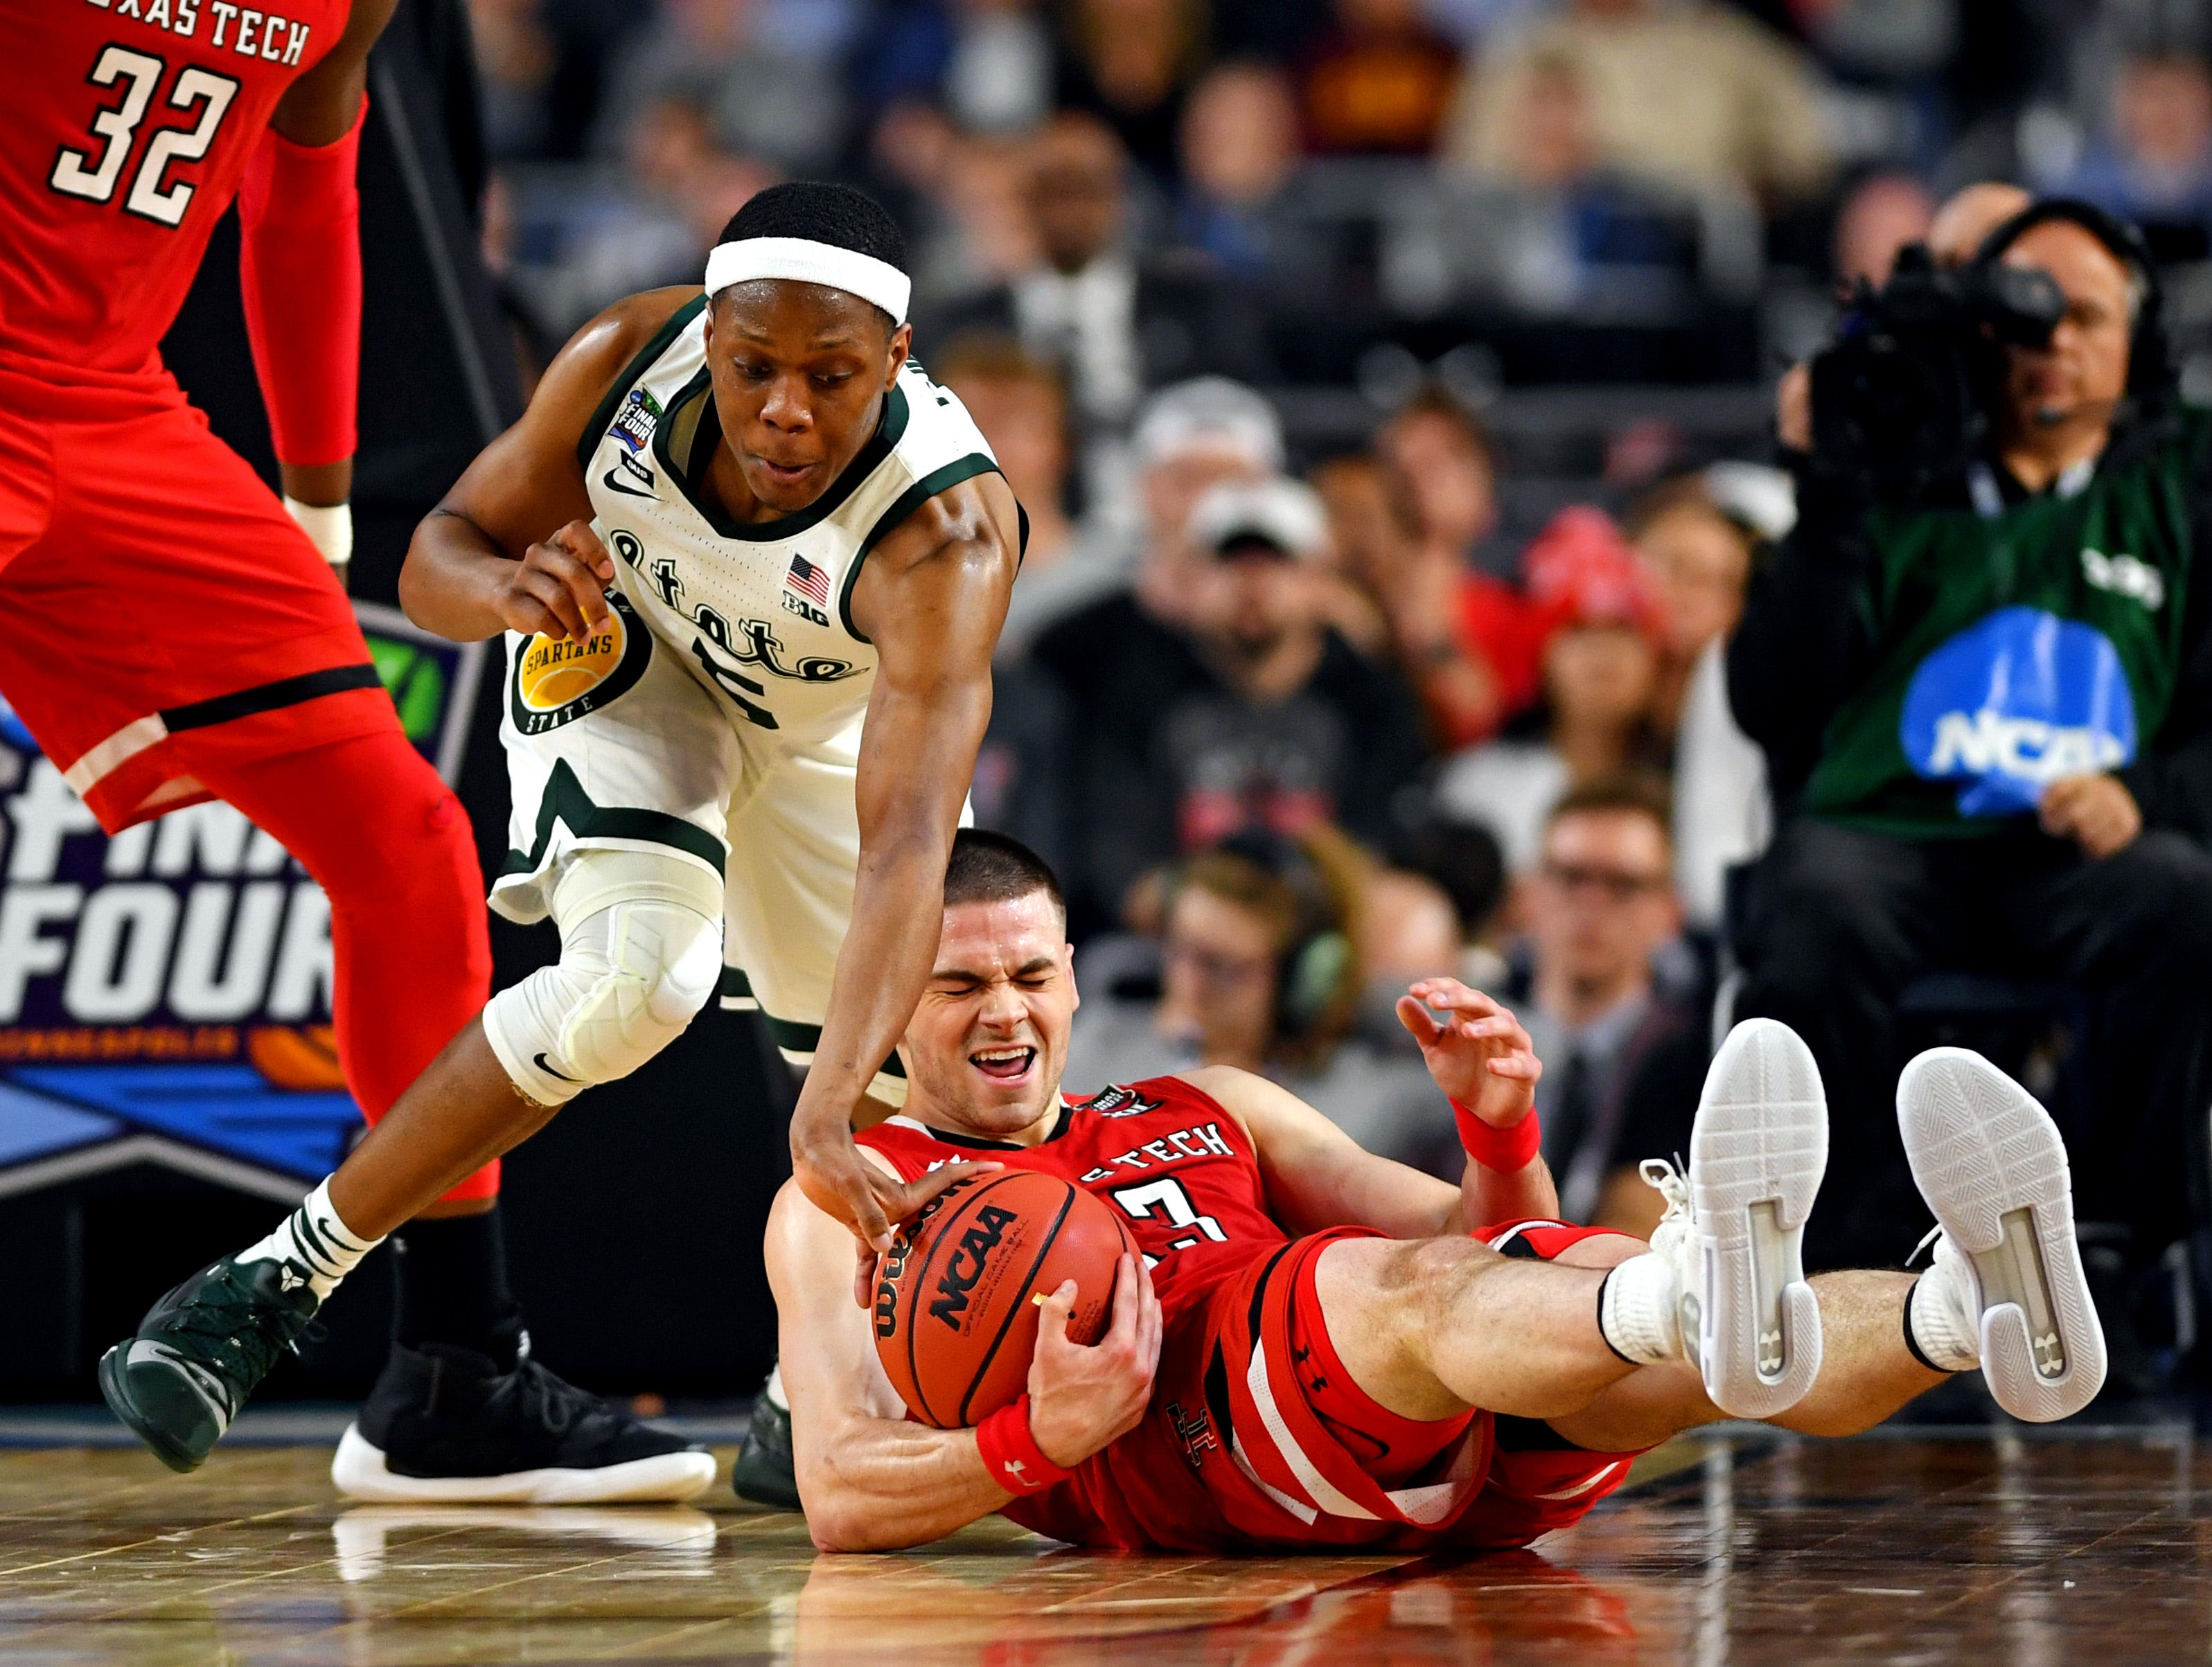 Apr 6, 2019; Minneapolis, MN, USA; Texas Tech Red Raiders guard Matt Mooney (13) falls to the court against Michigan State Spartans guard Cassius Winston (5) during the second half in the semifinals of the 2019 men's Final Four at US Bank Stadium. Mandatory Credit: Bob Donnan-USA TODAY Sports